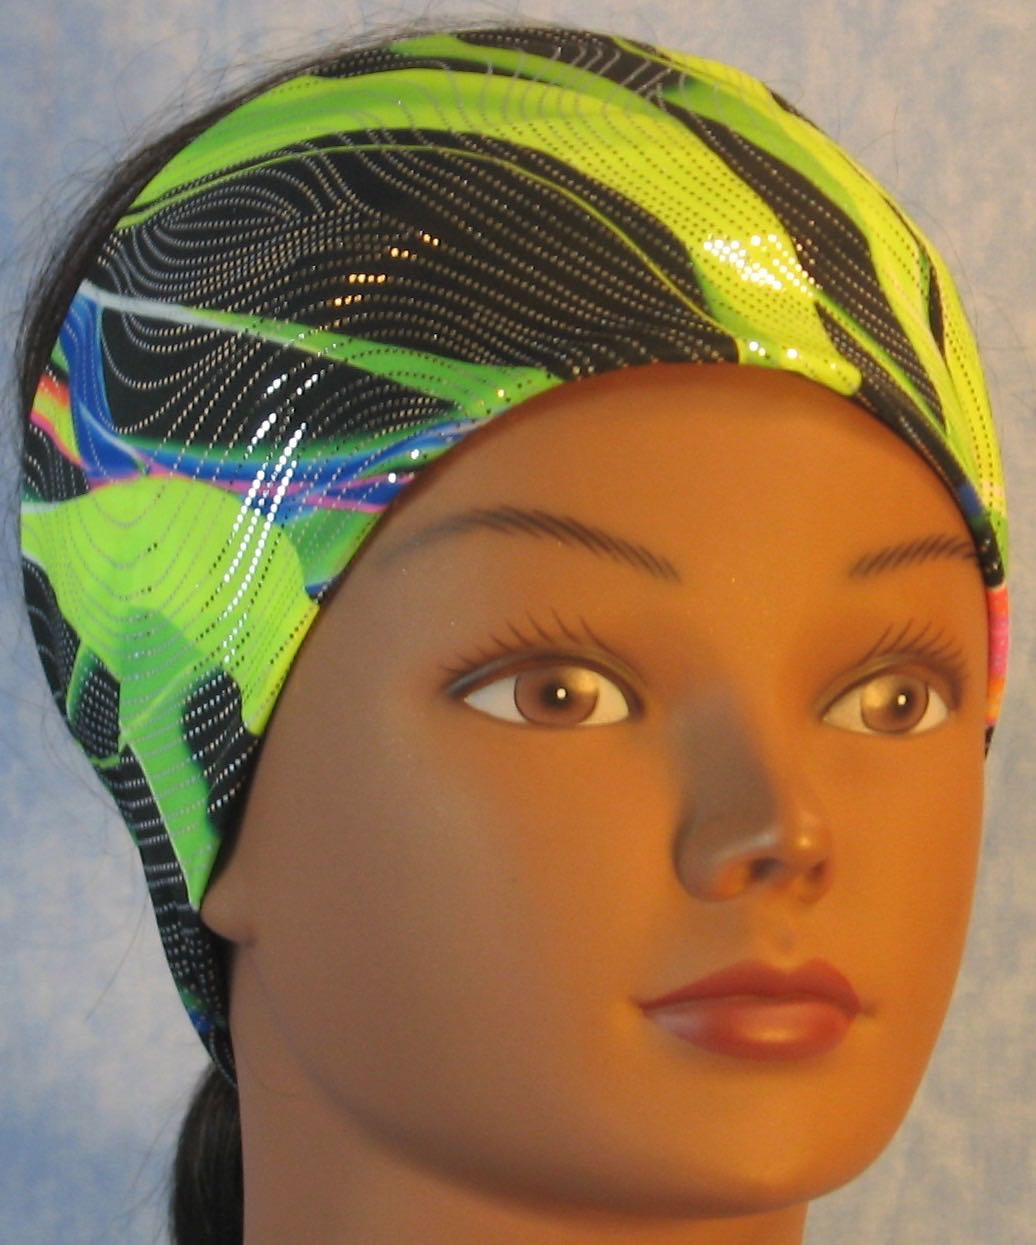 Headband-Green Black Waves With Silver Performance Knit-Adult M